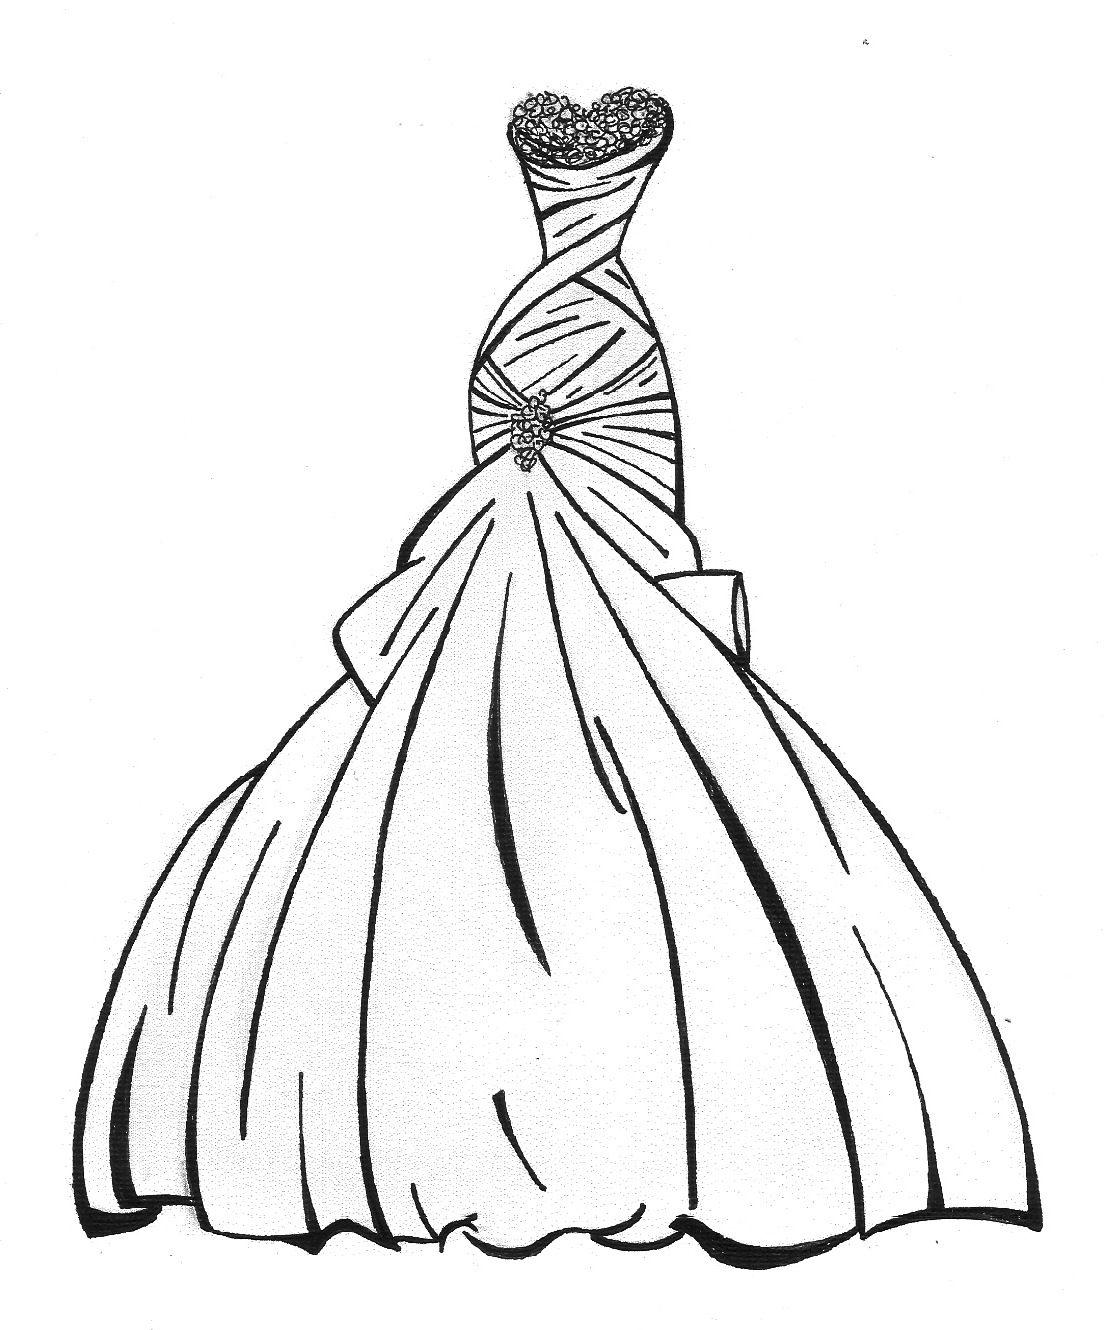 1104x1330 Awe Inspiring Dress Coloring Pages To Print Games For Adults Blank